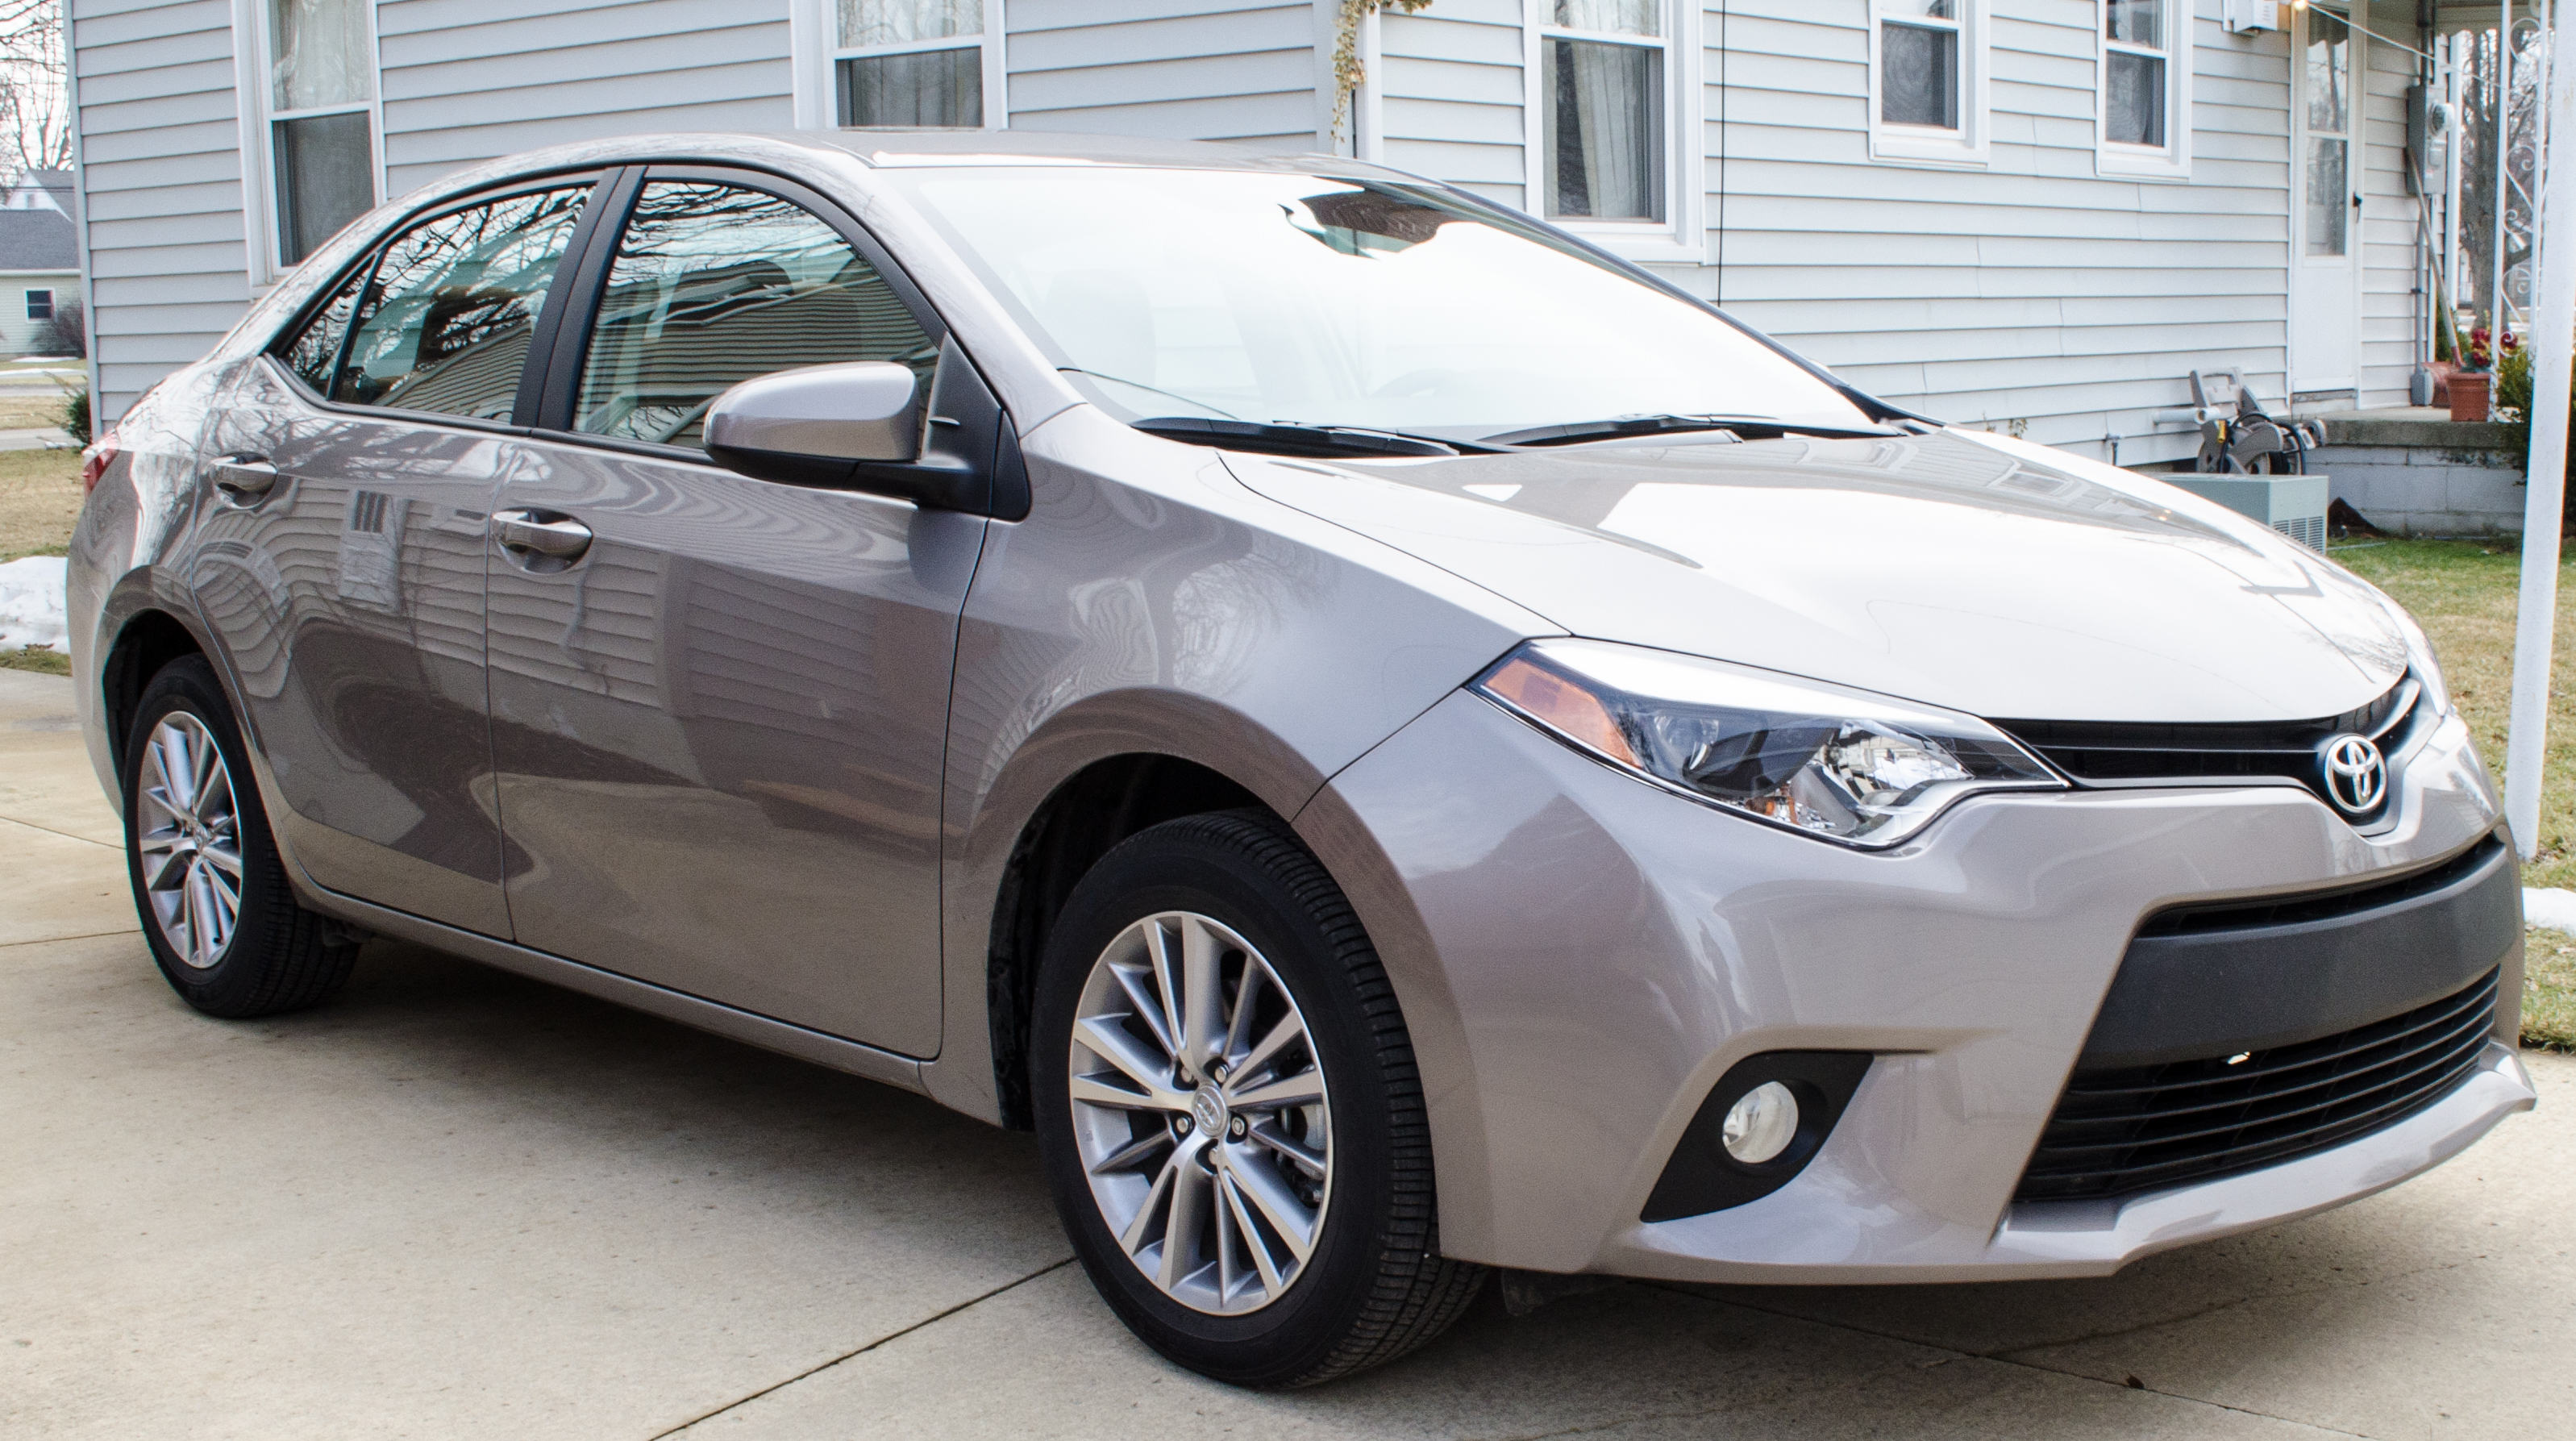 READ: 2014 Toyota Corolla Review: Thereu0027s A Reason This Car Is A Top Seller